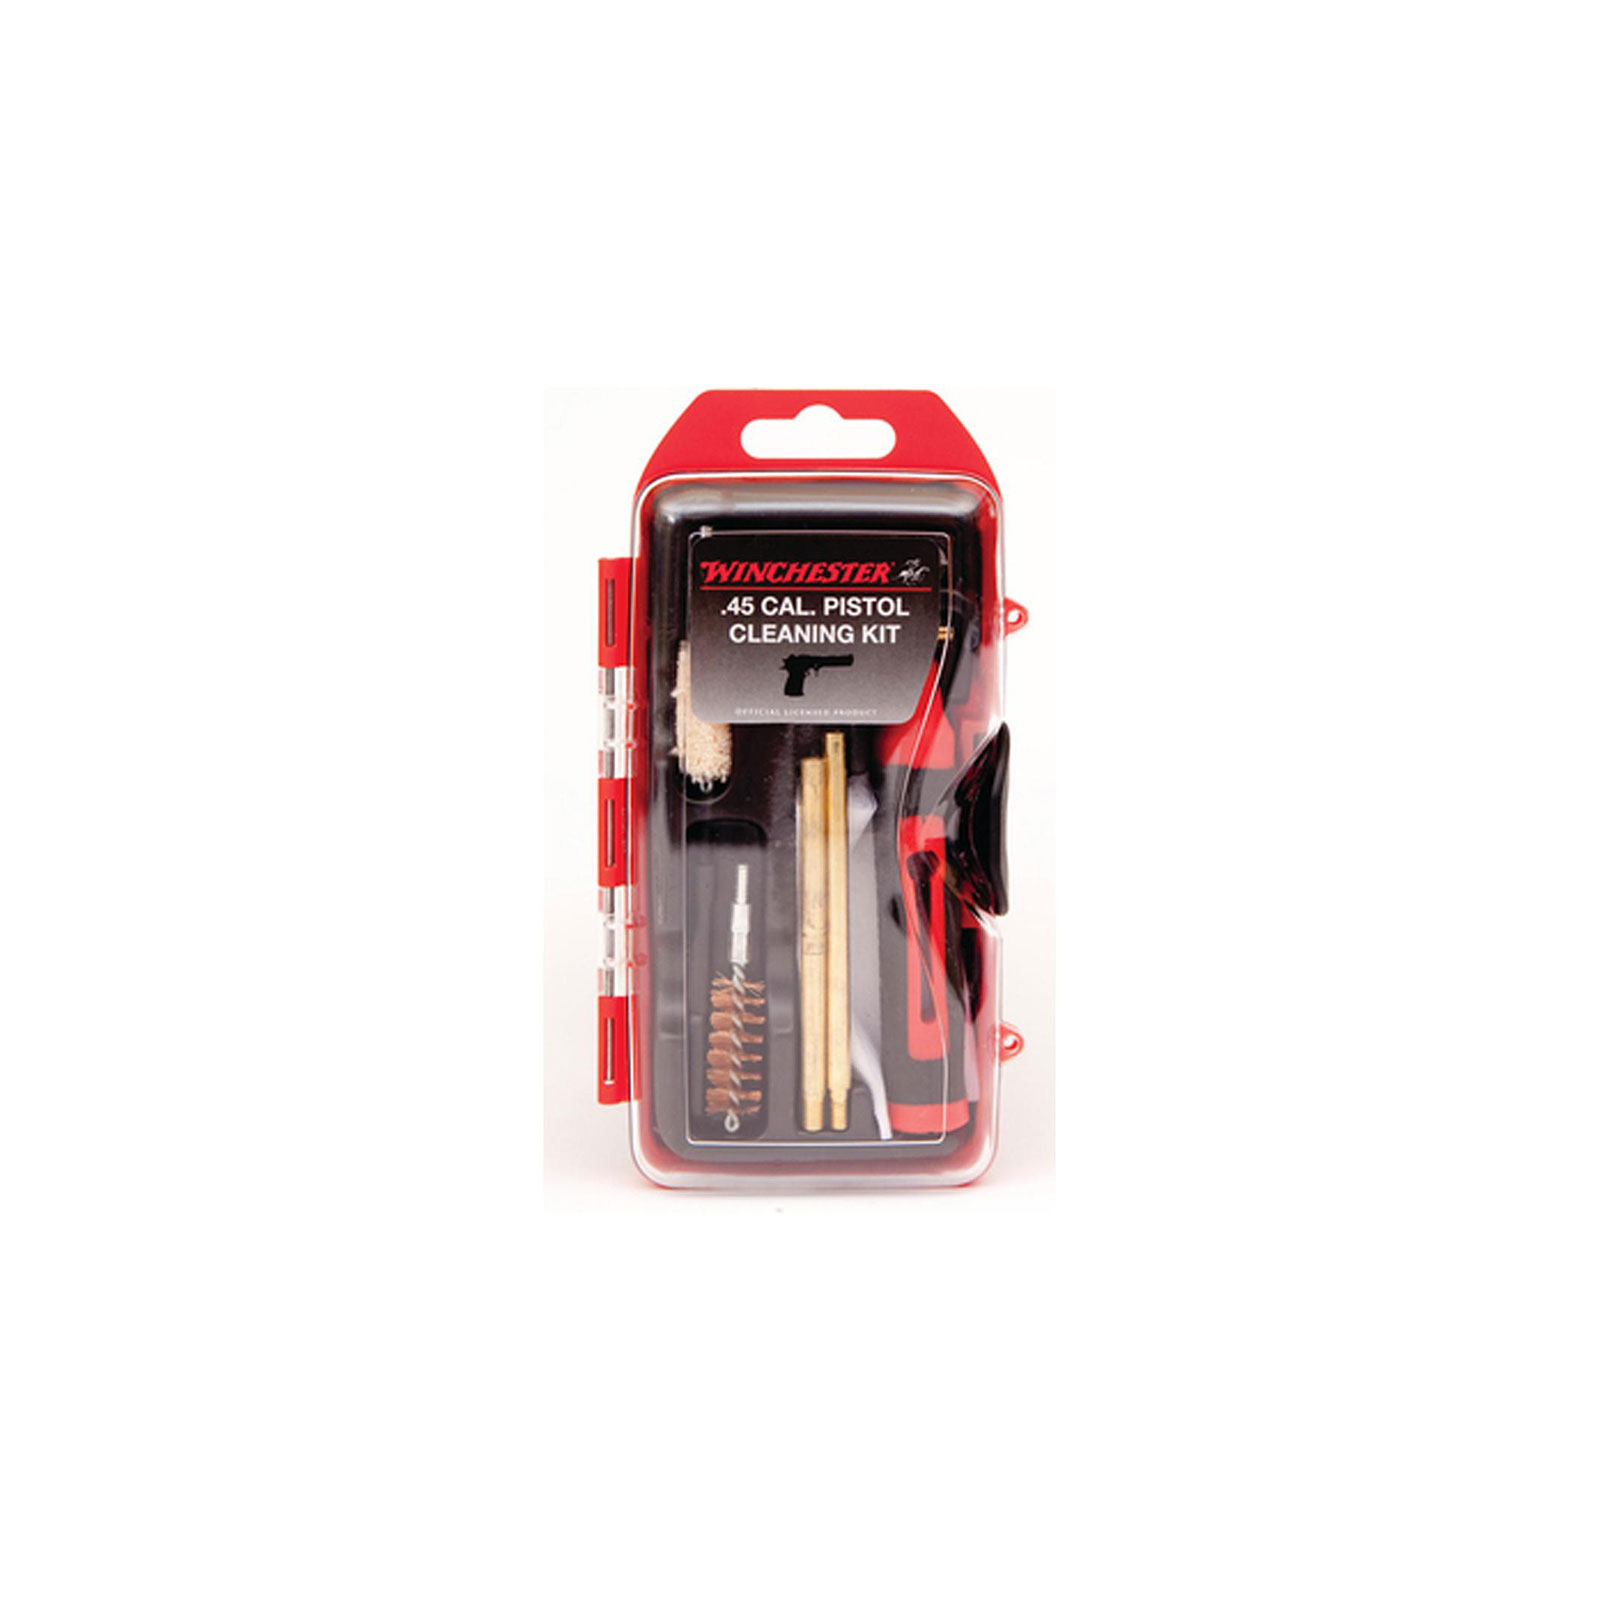 Winchester 14-Piece .44/45 Caliber Pistol Cleaning Kit with 6-Piece Driver Set